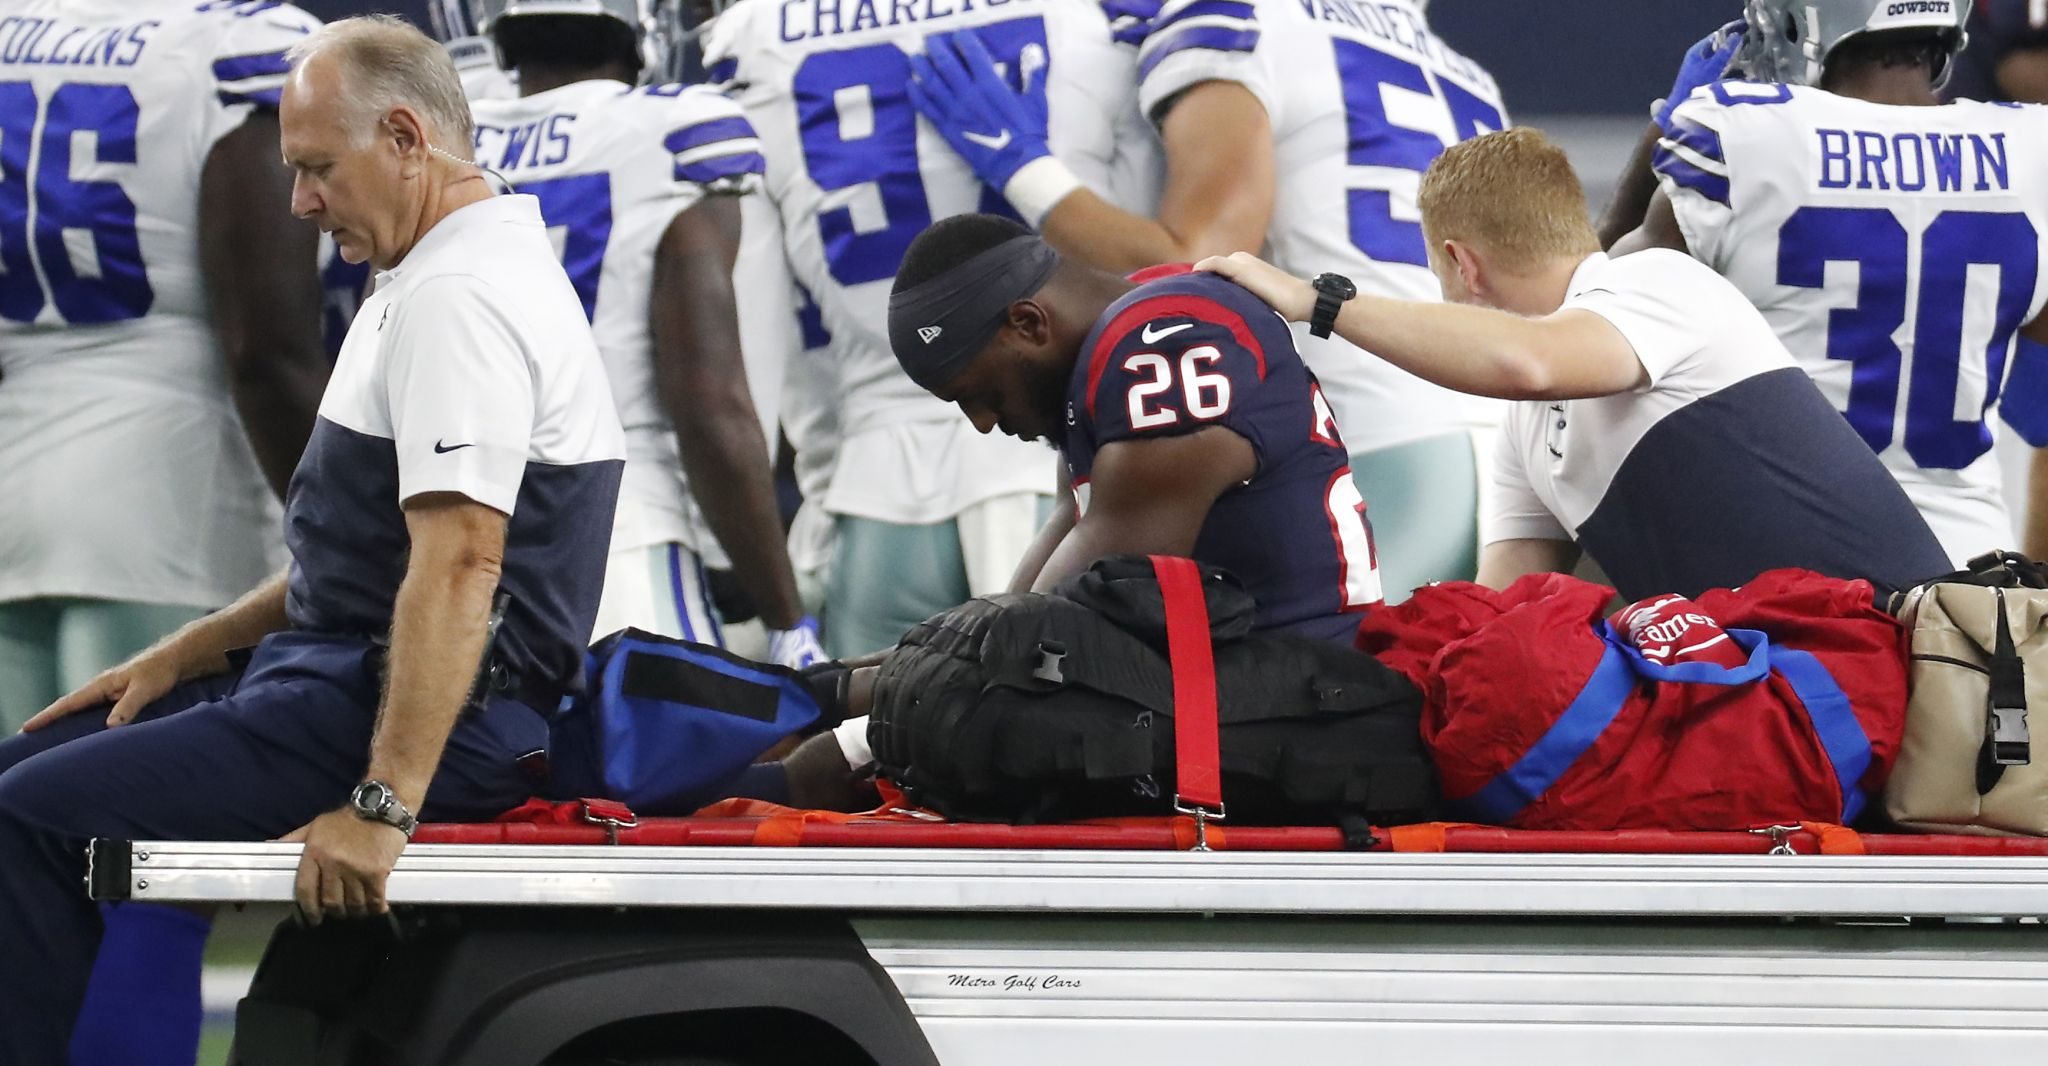 3f634d0f Sources: Texans' Lamar Miller feared to have torn ACL - The 5th News